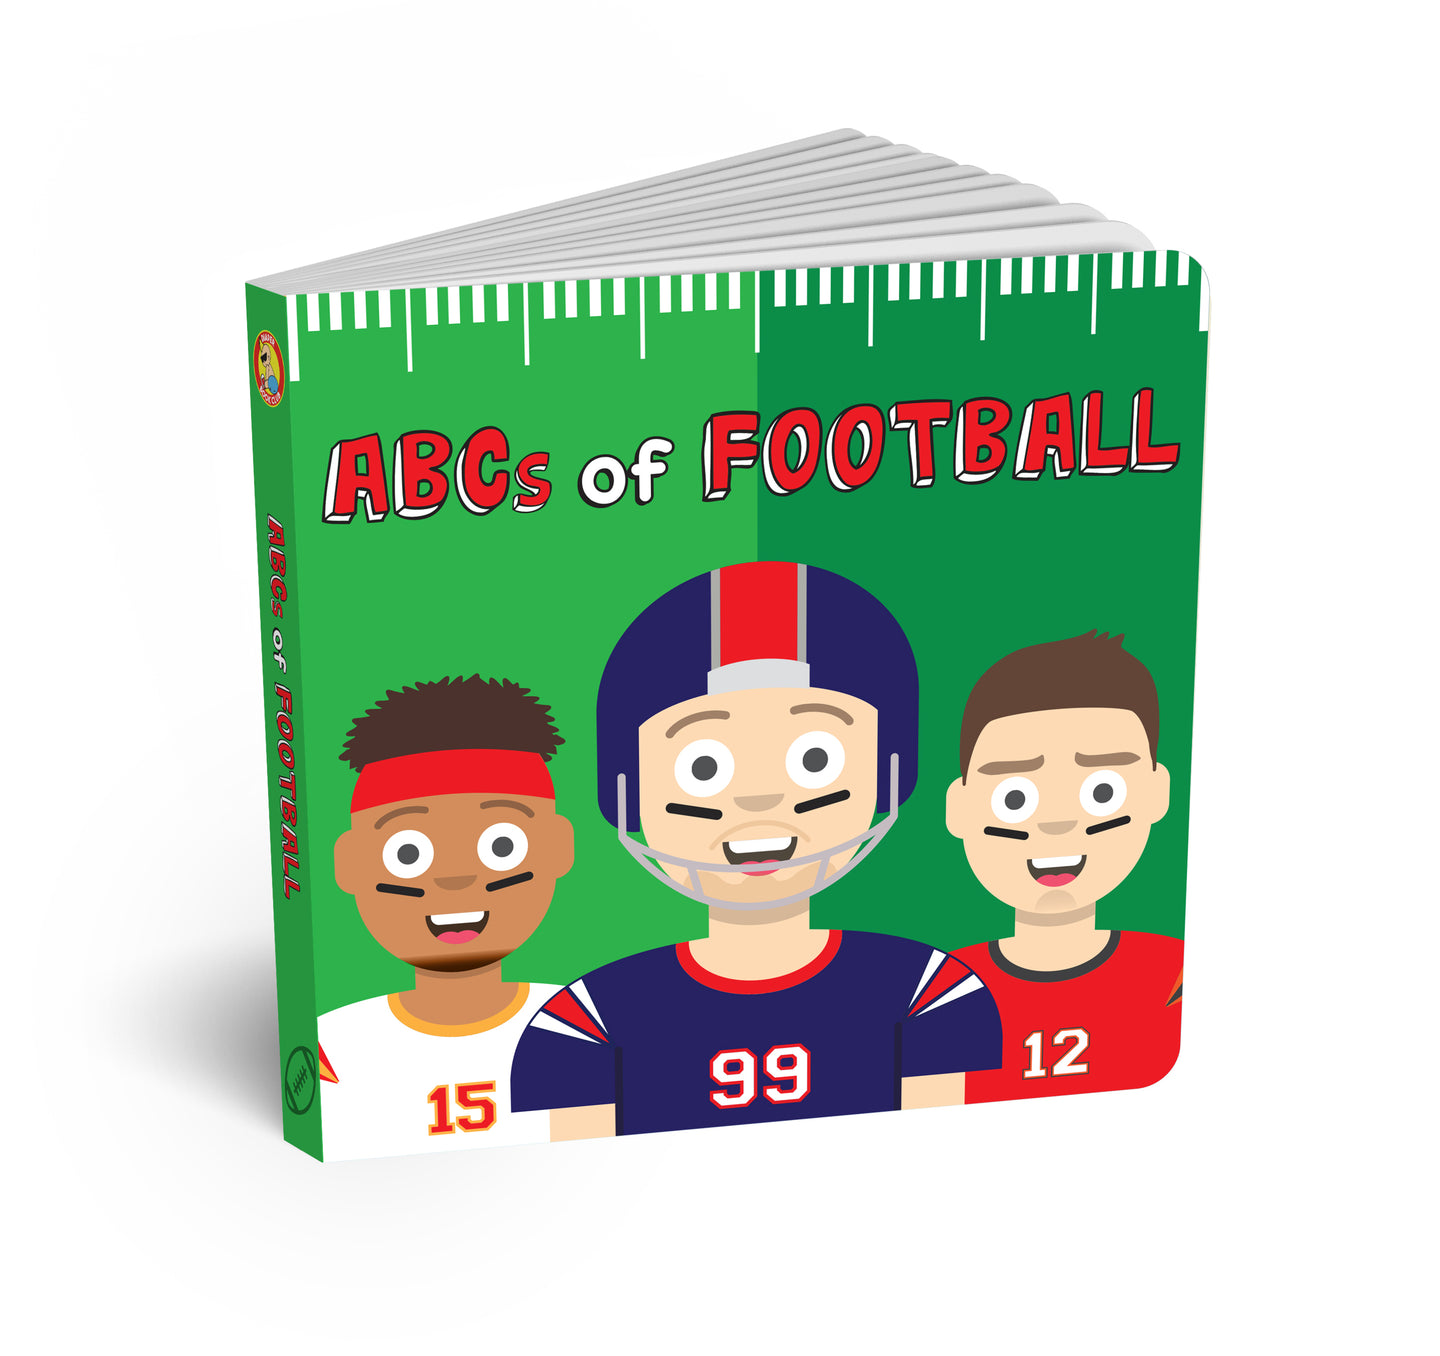 ABCs of Football